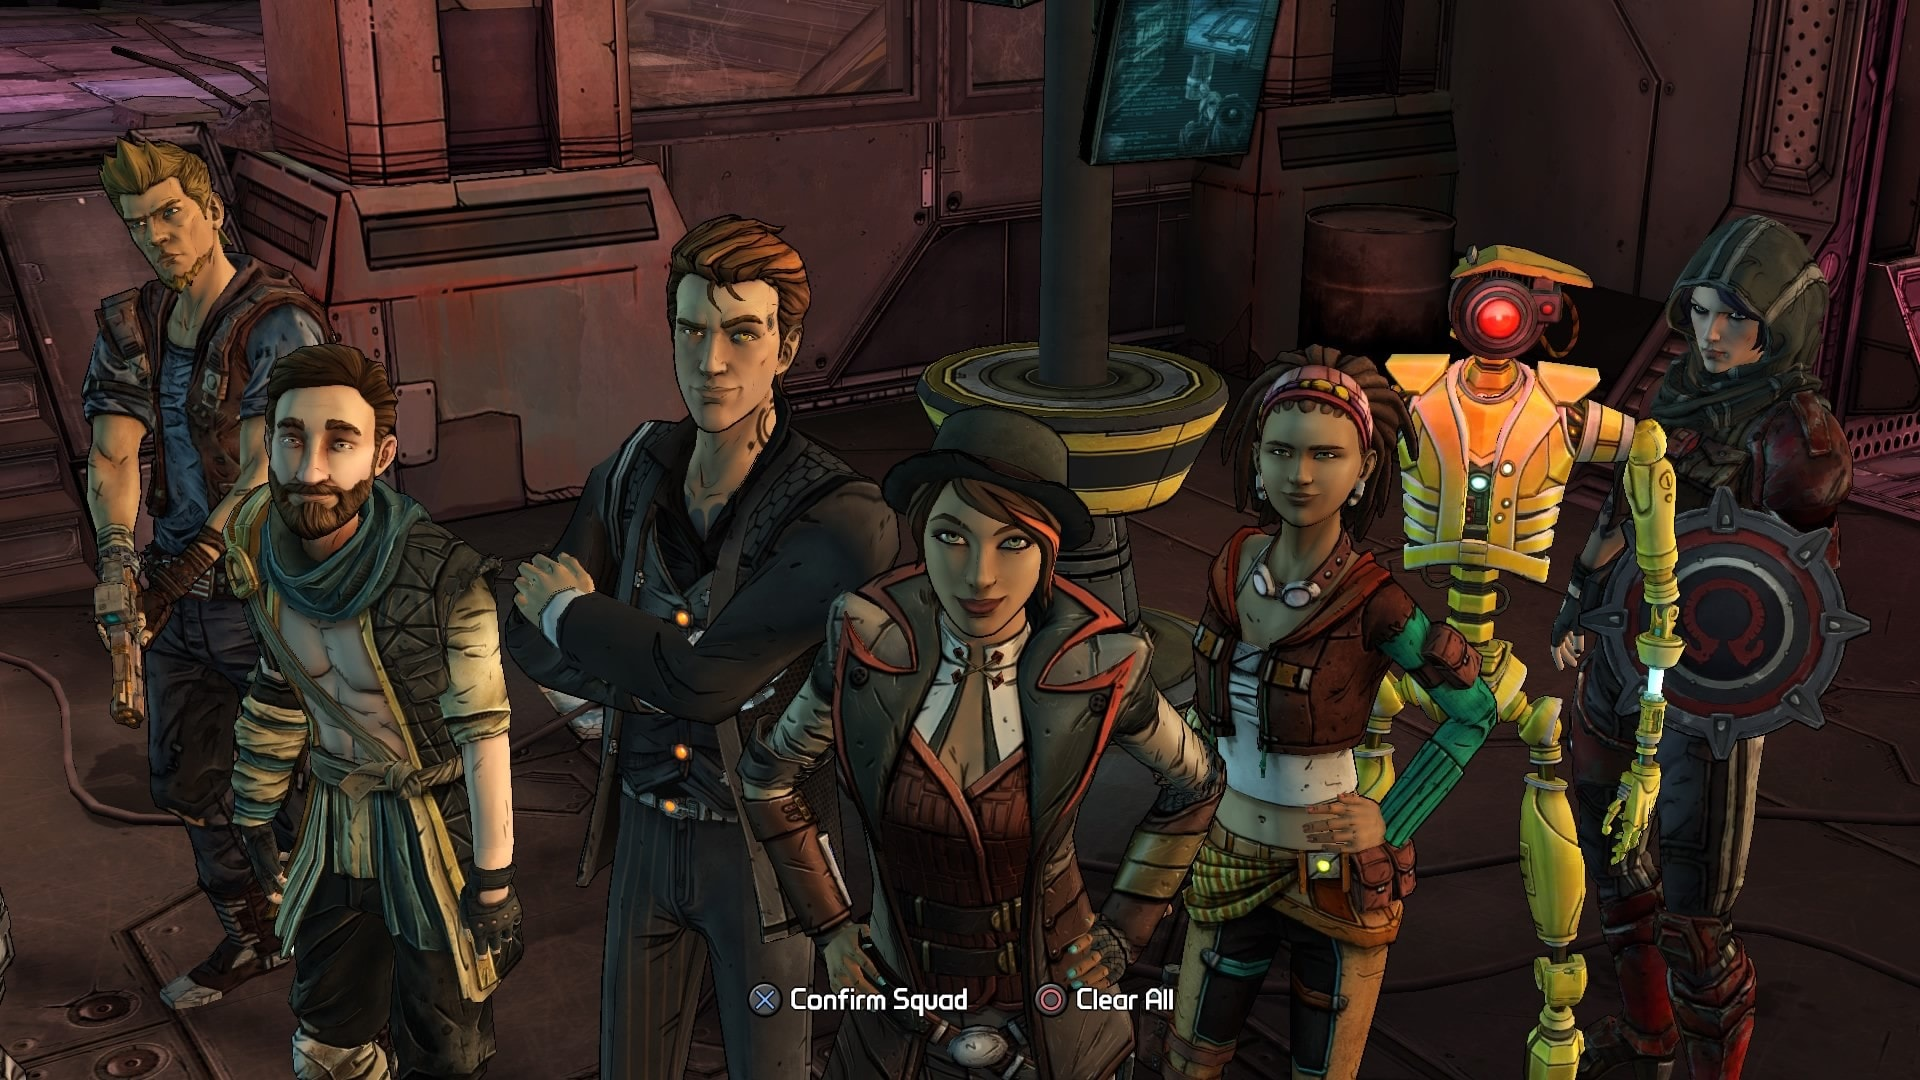 Tales from the Borderlands: Episode 5 - The Vault of the Traveler Wallpaper